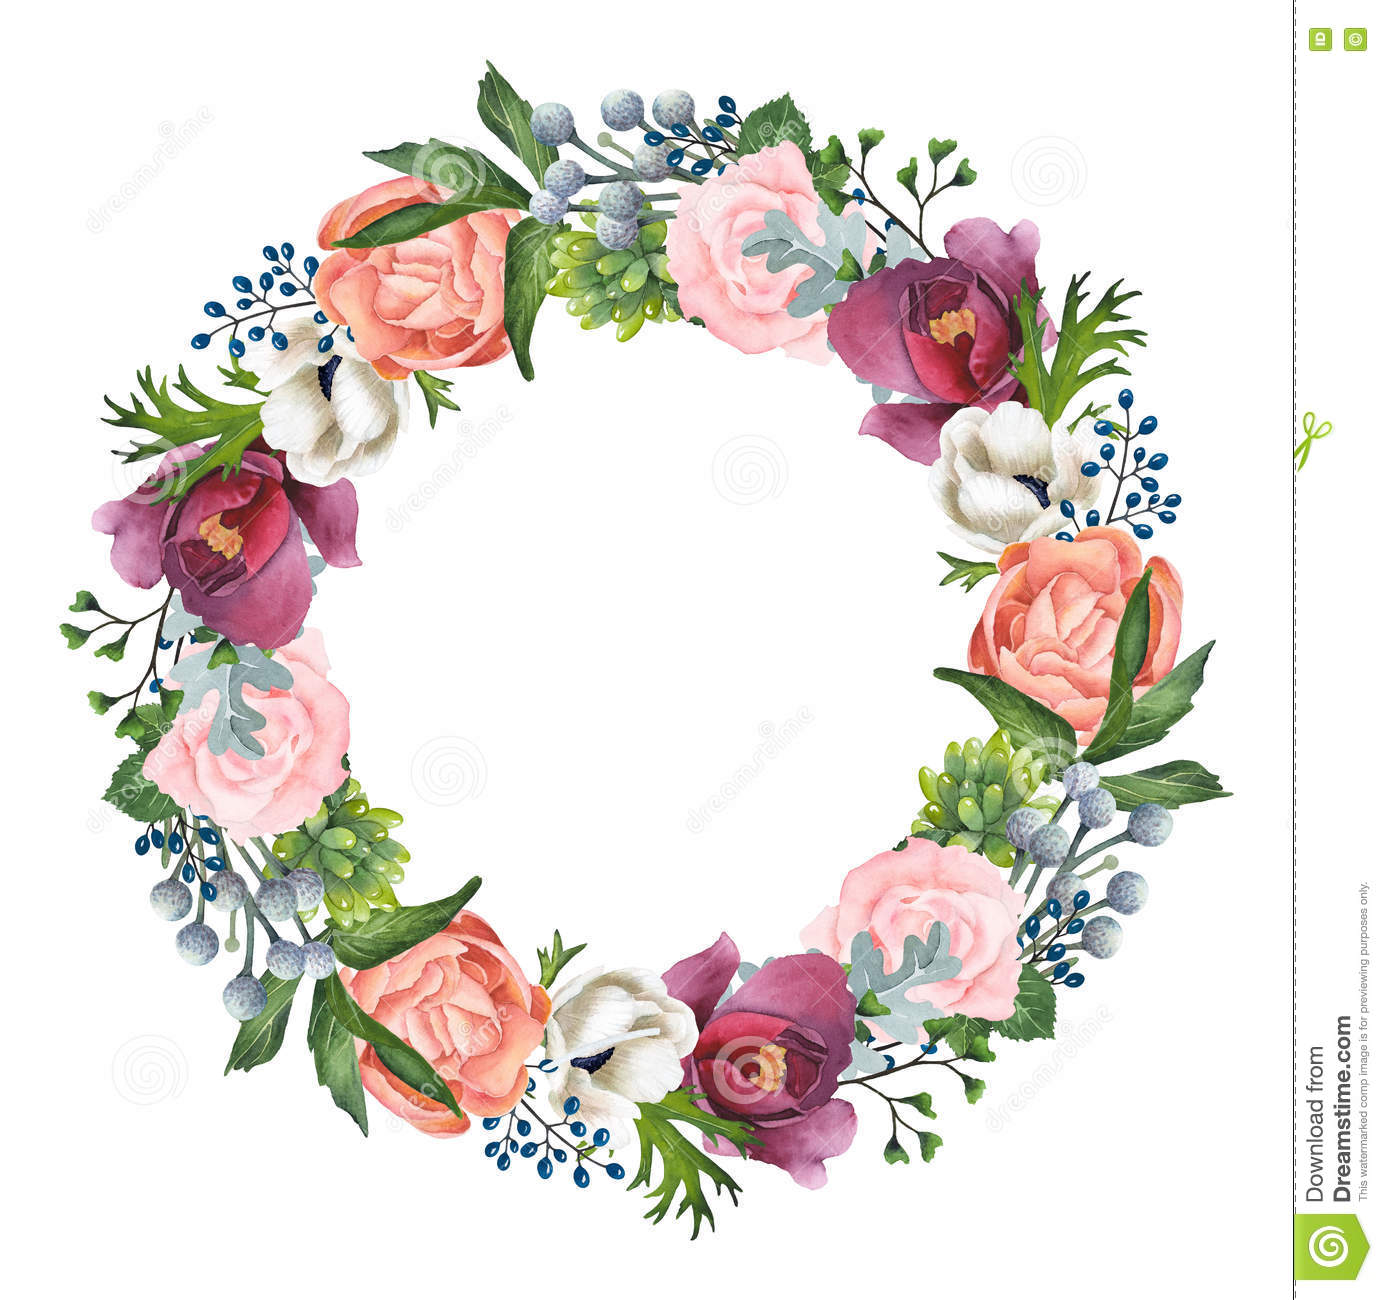 Hand Painted Watercolor Roses Anemones And Peonies Wreath Stock Illustration